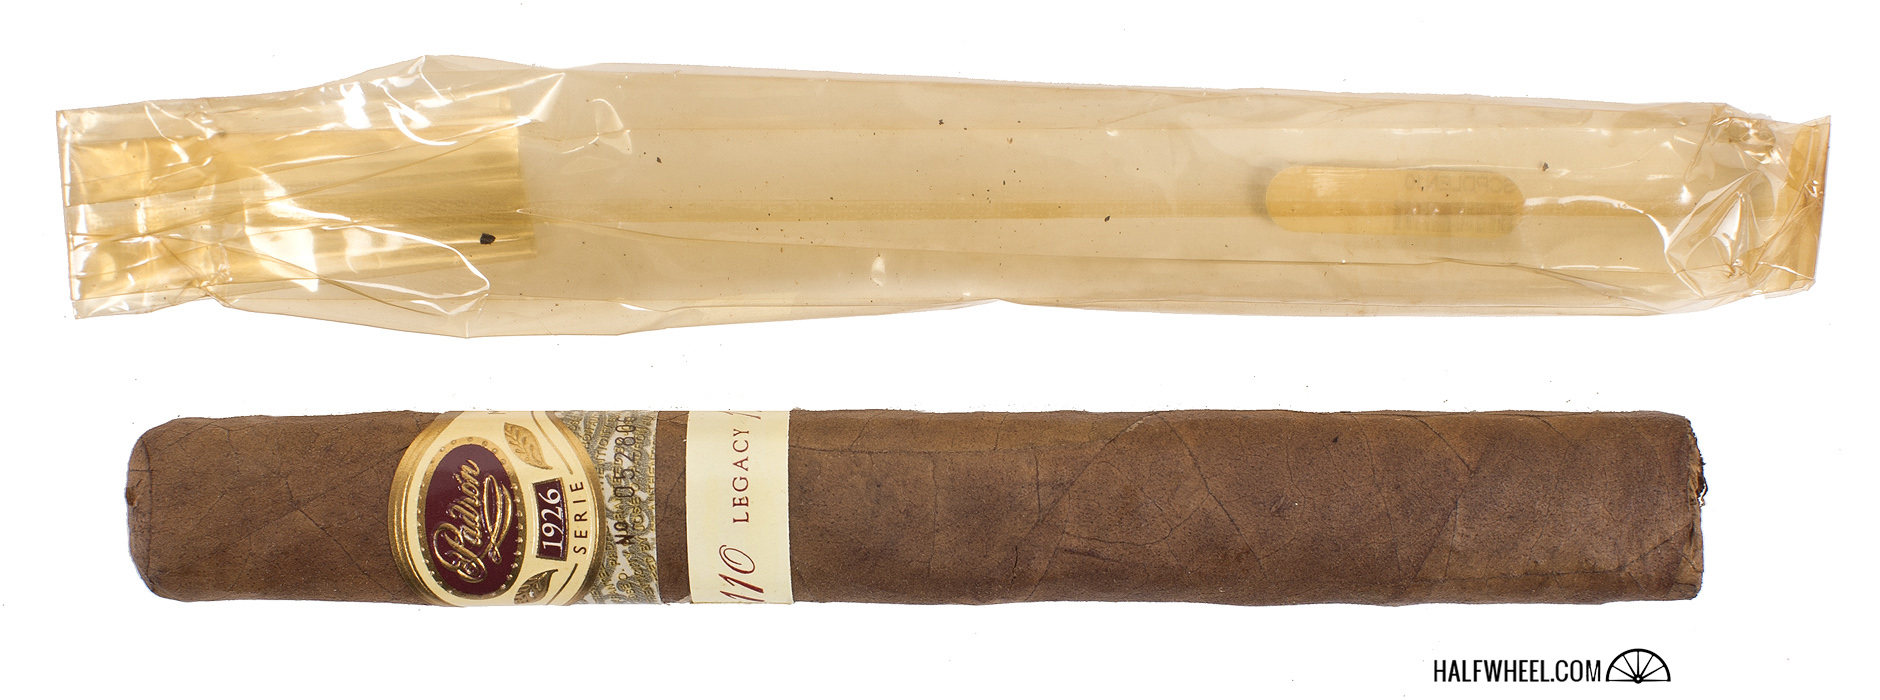 Padron 1926 Holt s 110 Legacy Natural Cellophane